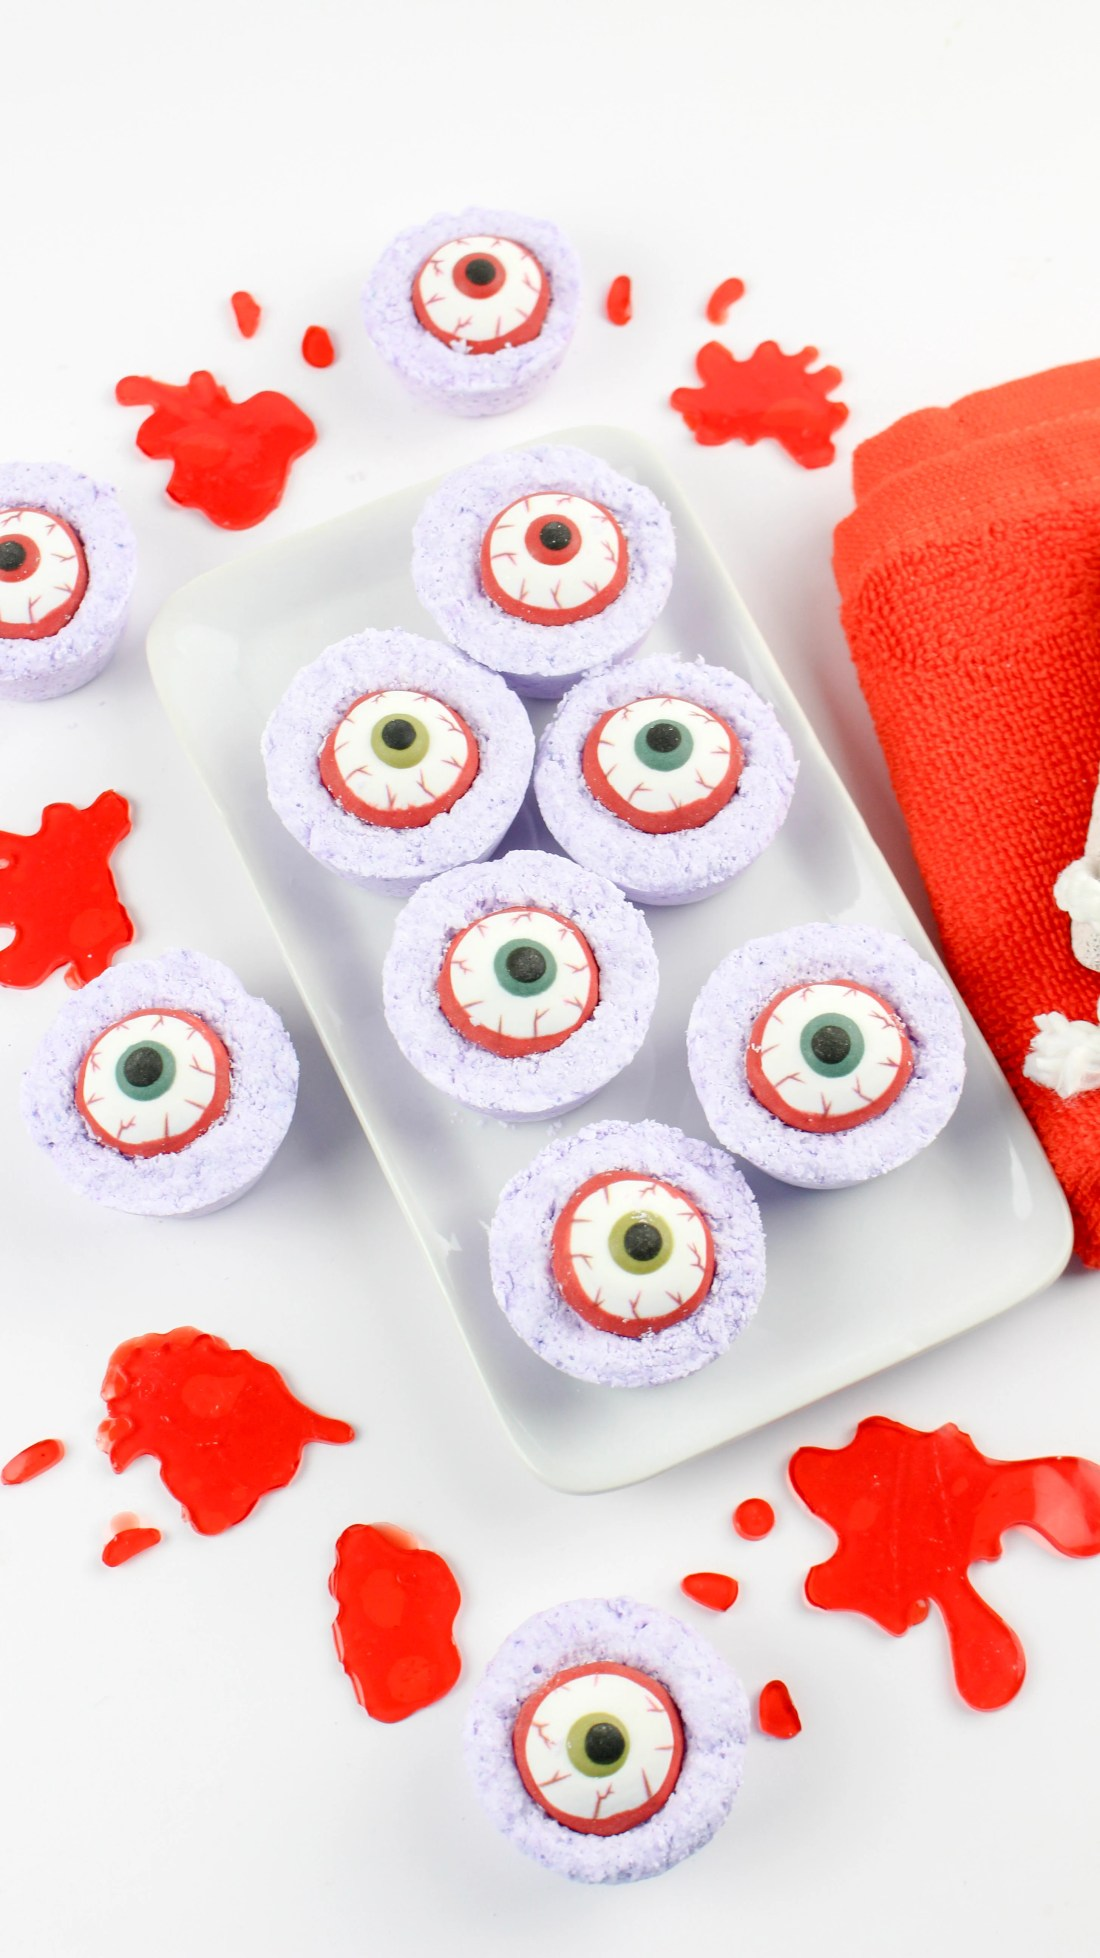 Longshot Zombie Eyes Bath Bombs. Create your very own DIY Zombie Eyes Bath Bombs.